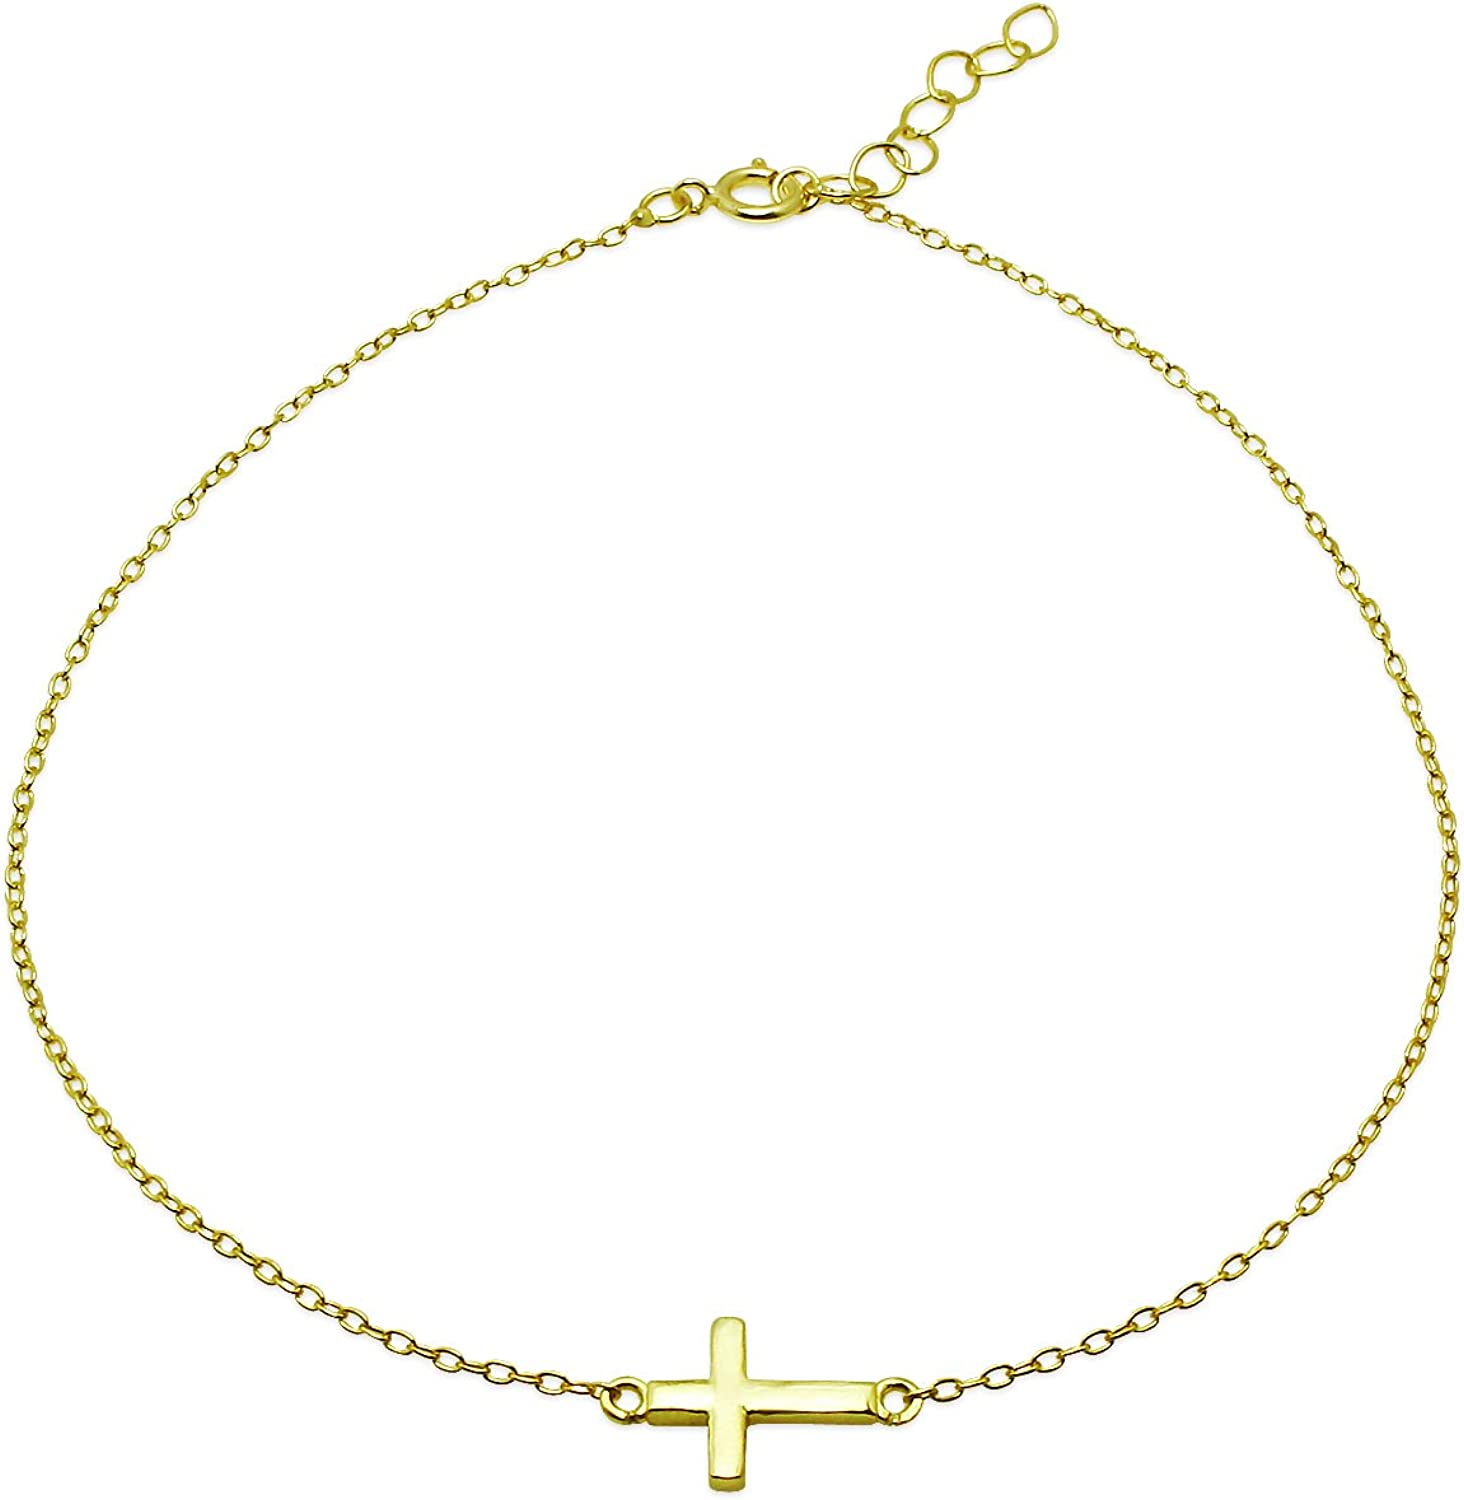 Sterling Silver Cross Chain Anklet with Extender